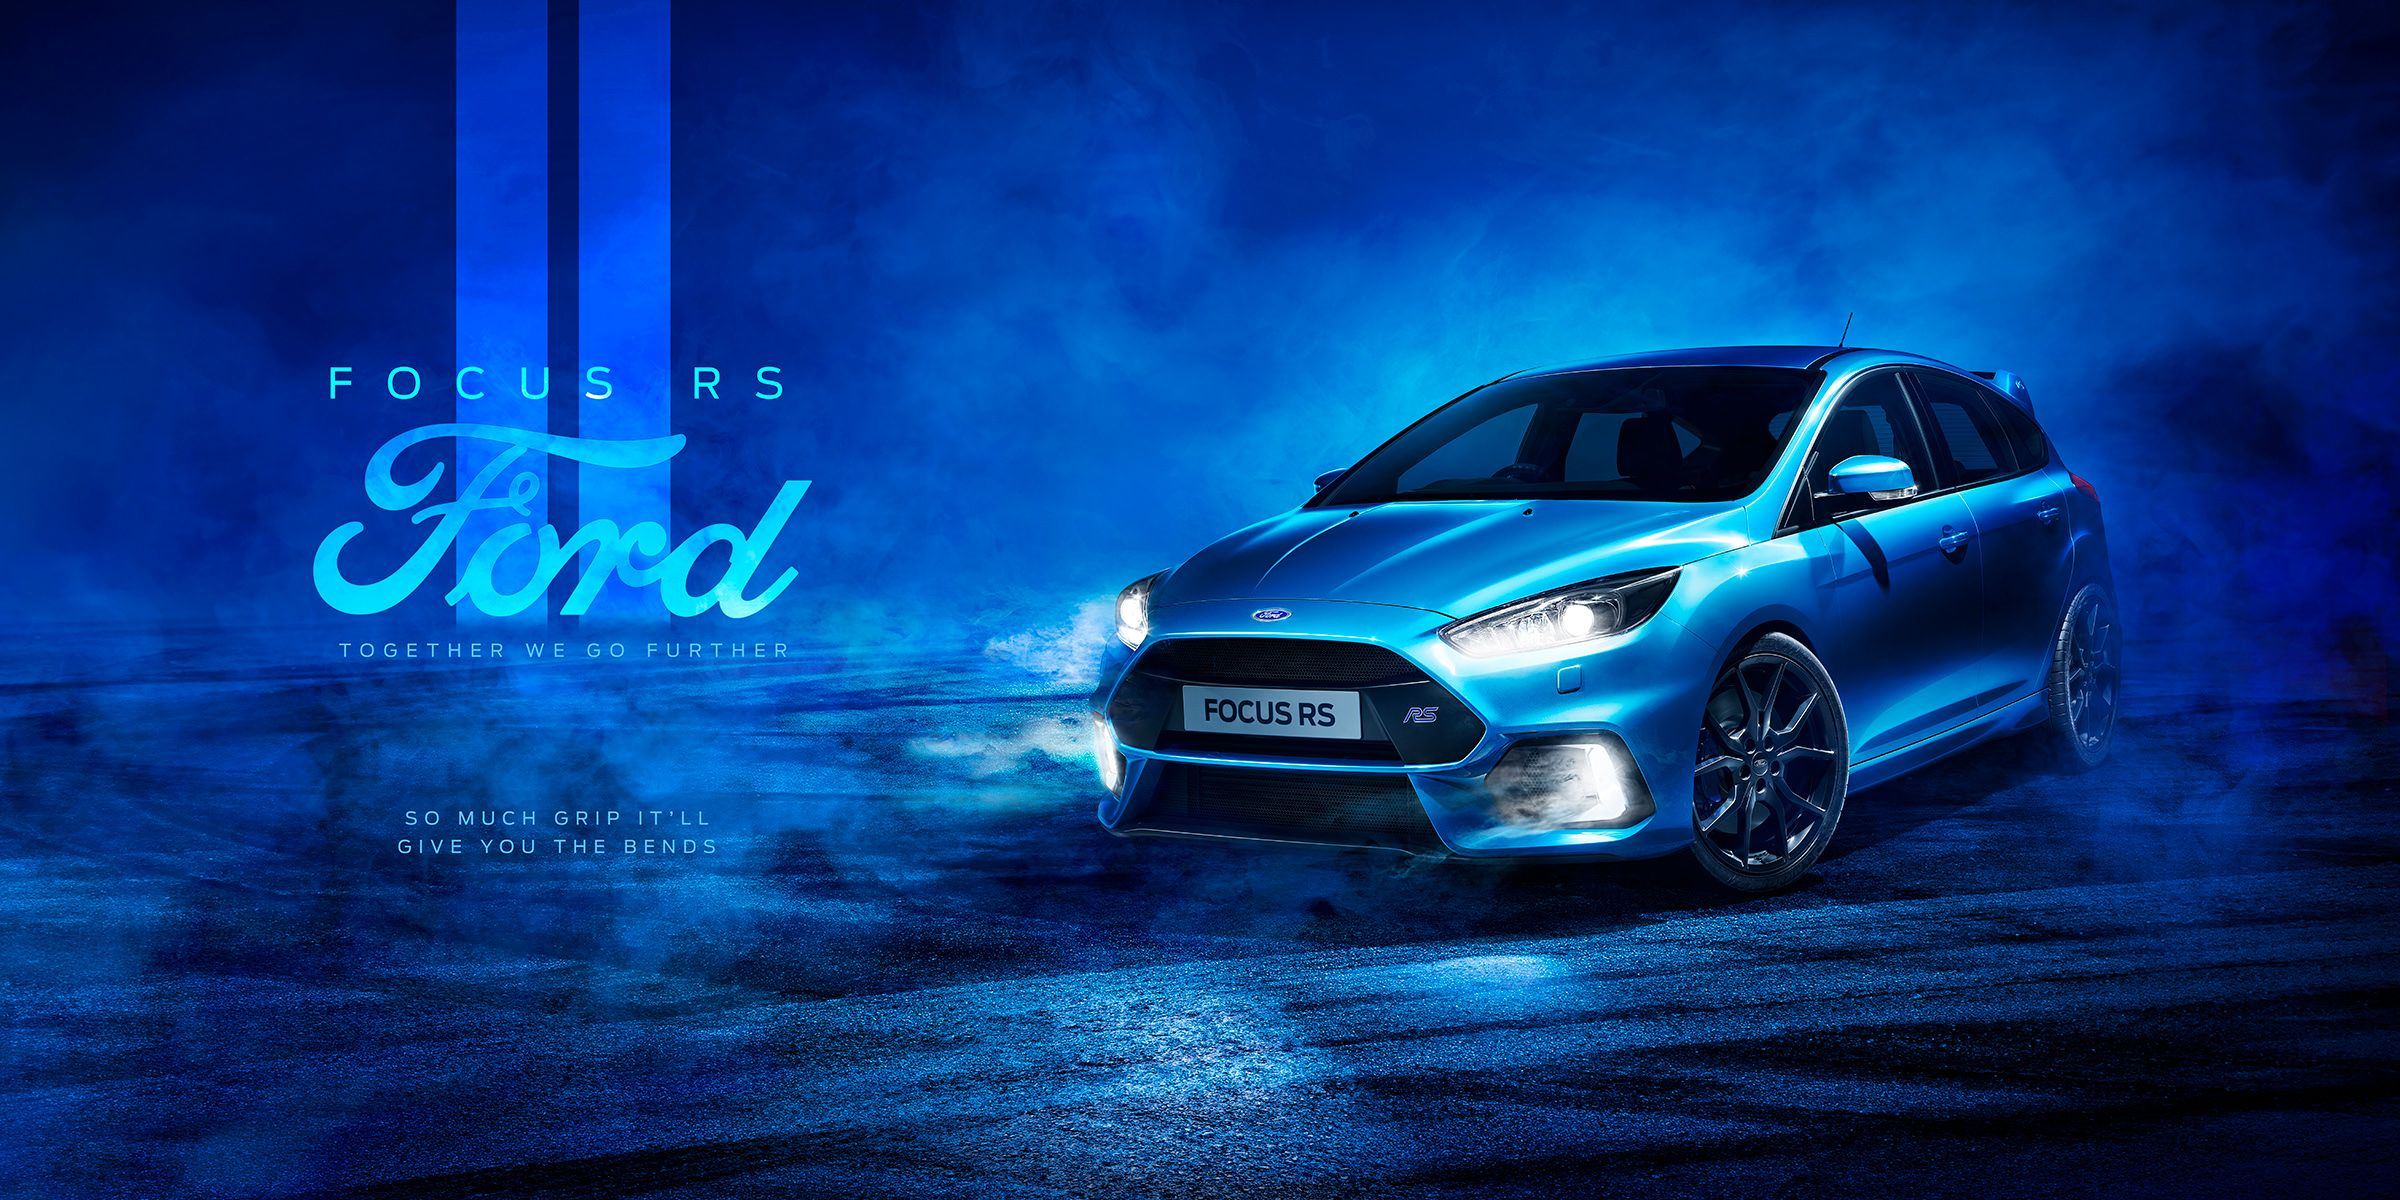 Ford Focus Rs Full Cgi Retouching On Behance Ford Focus Rs